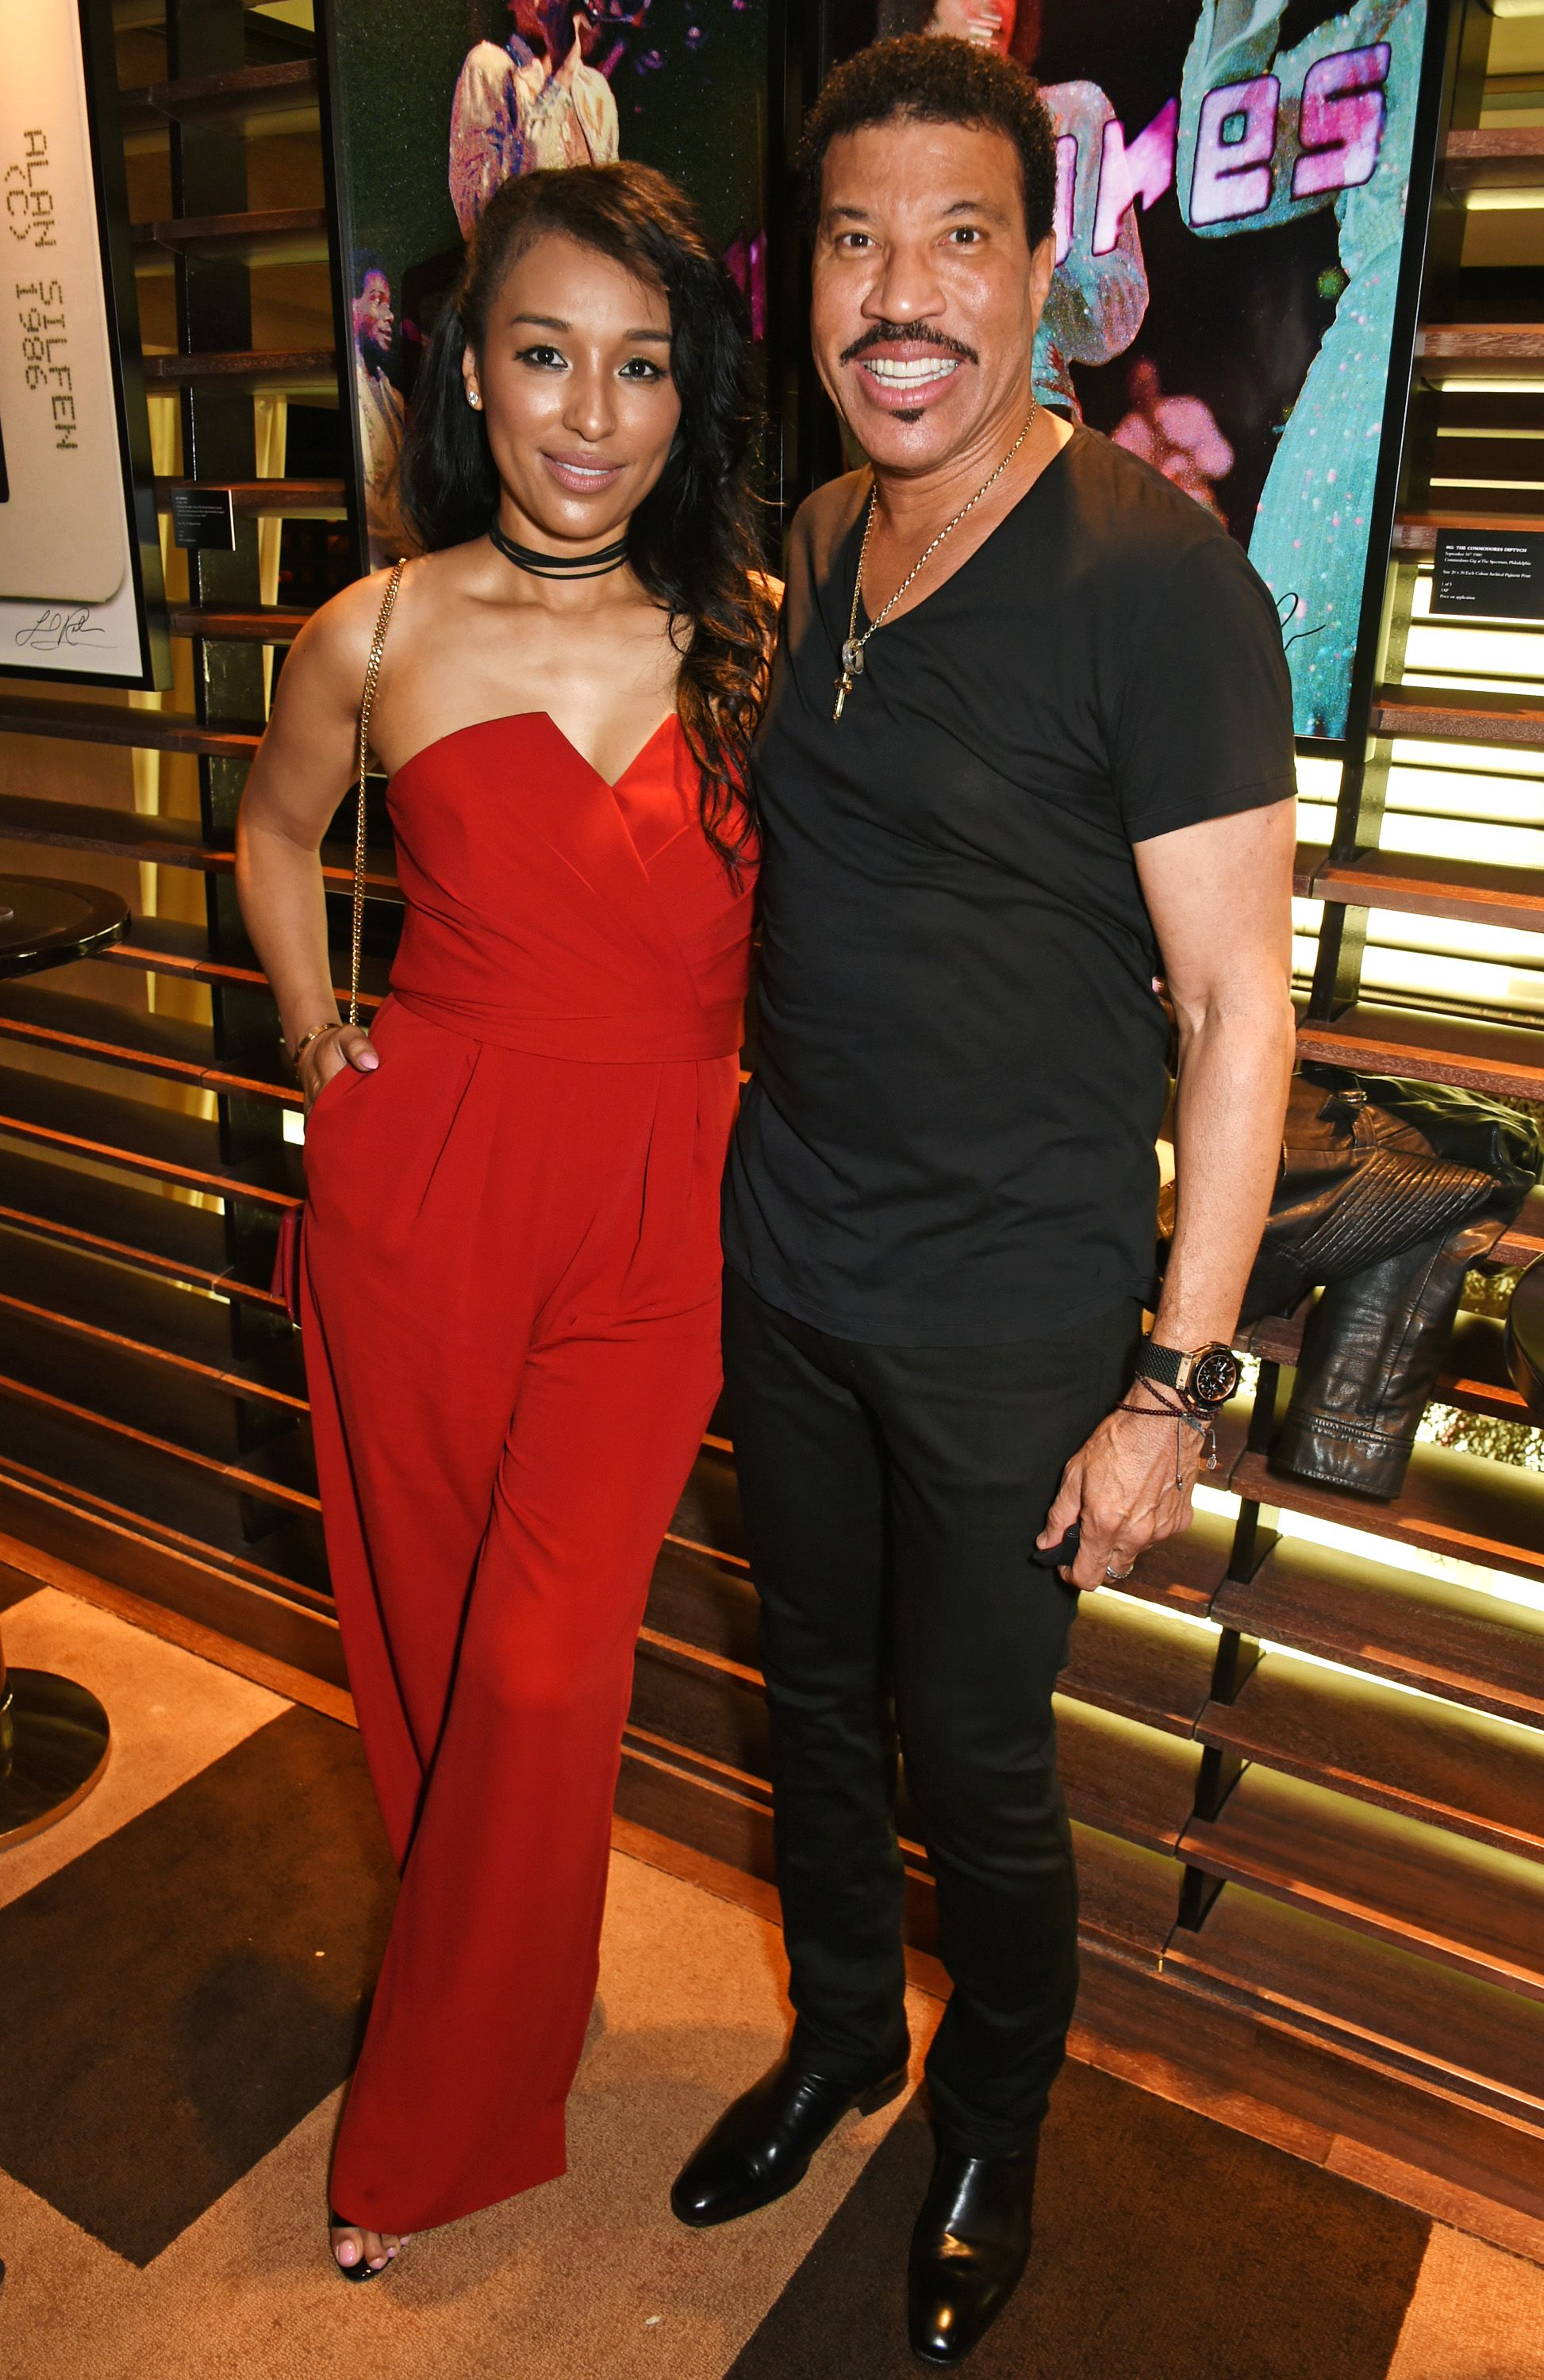 Lisa Parigi and Lionel Richie at the exclusive Lionel Richie exhibition 'STILL' on July 5, 2016 in London. | Photo: Getty Images